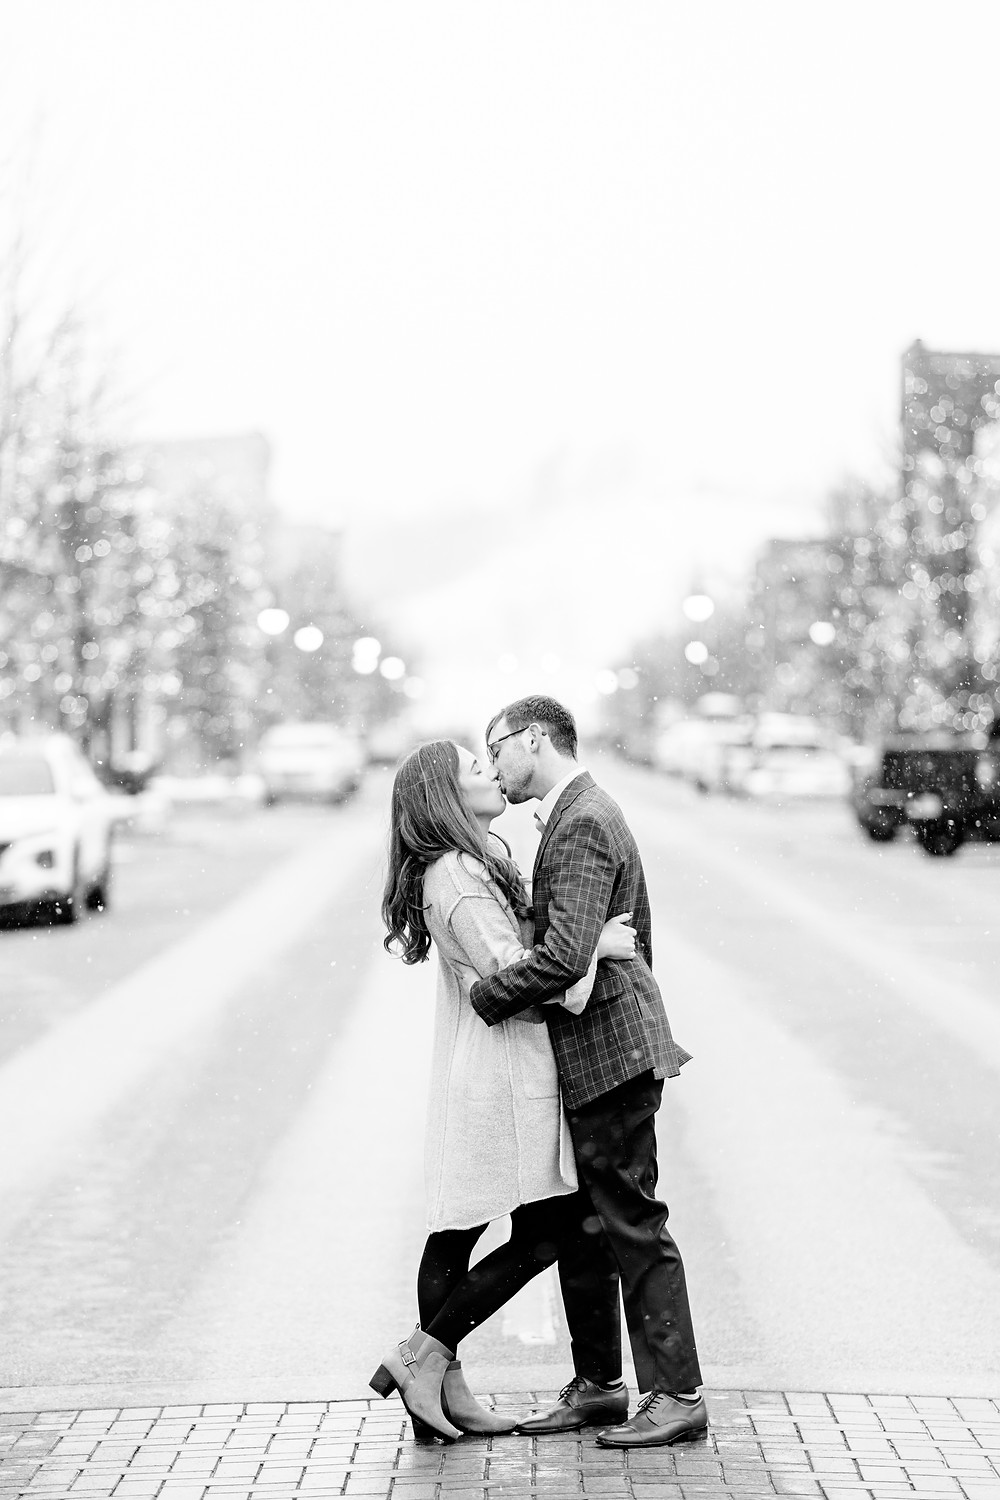 Josh and Andrea wedding photography husband and wife team michigan Grand Haven Rosy Mound engagement session fiance snowy town kissing street